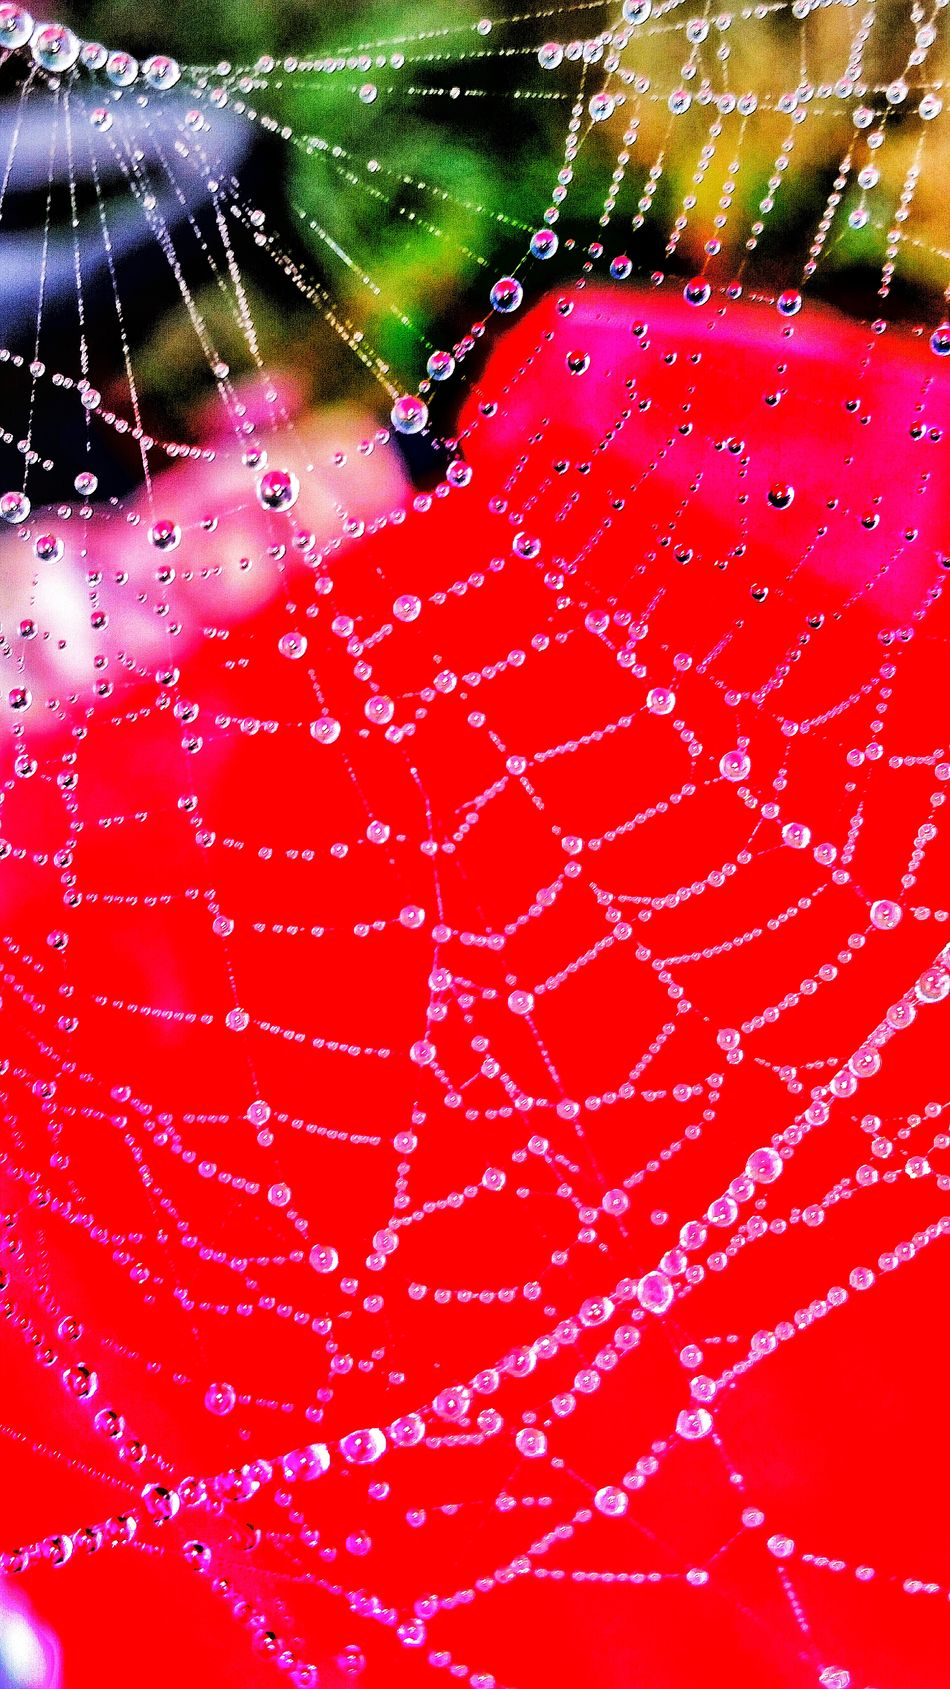 Maximum Closeness Macro Spider Web Close-up Dew Drops On Spider Web Foggy Morning Dewdrops Shapes And Forms Fragility Complexity Pattern Animals In The Wild Beauty In Nature Web Water Red Red Background Outdoor Textured  Nature Designs In Nature Patterns In Nature Sunrise Wet Dawn